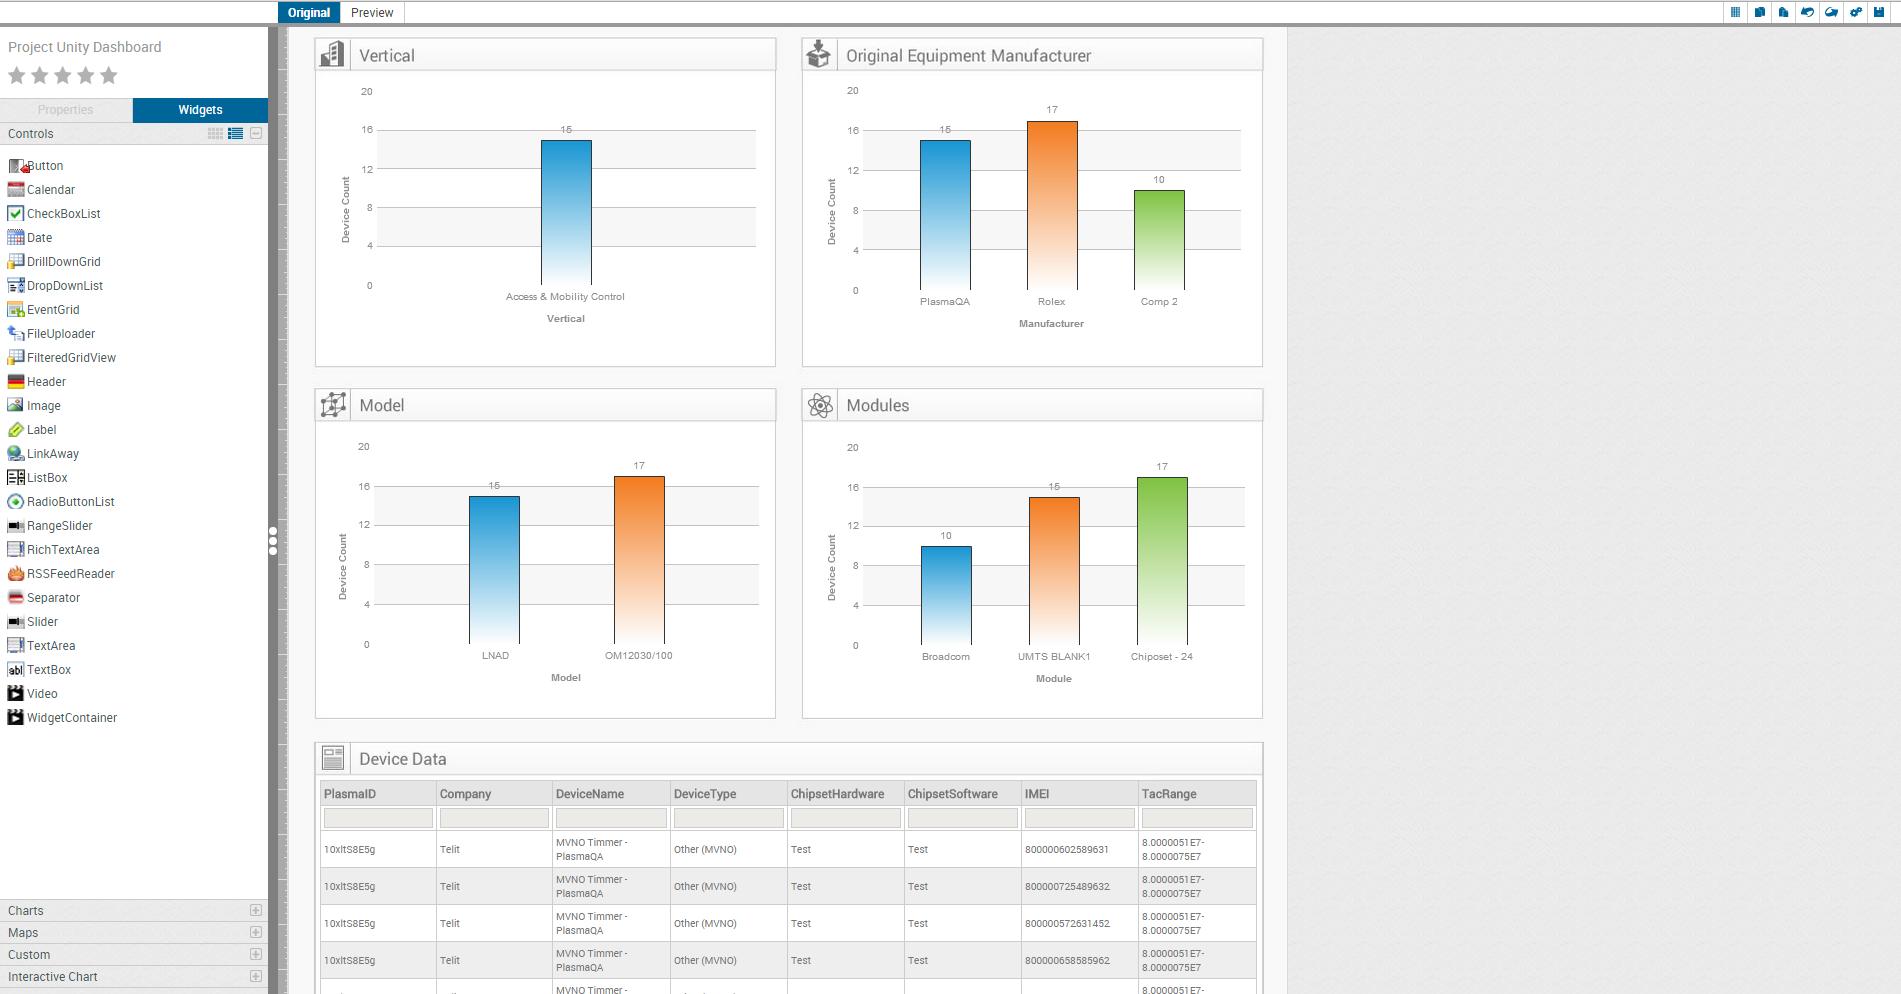 C2M Workflow Software - Project dashboard